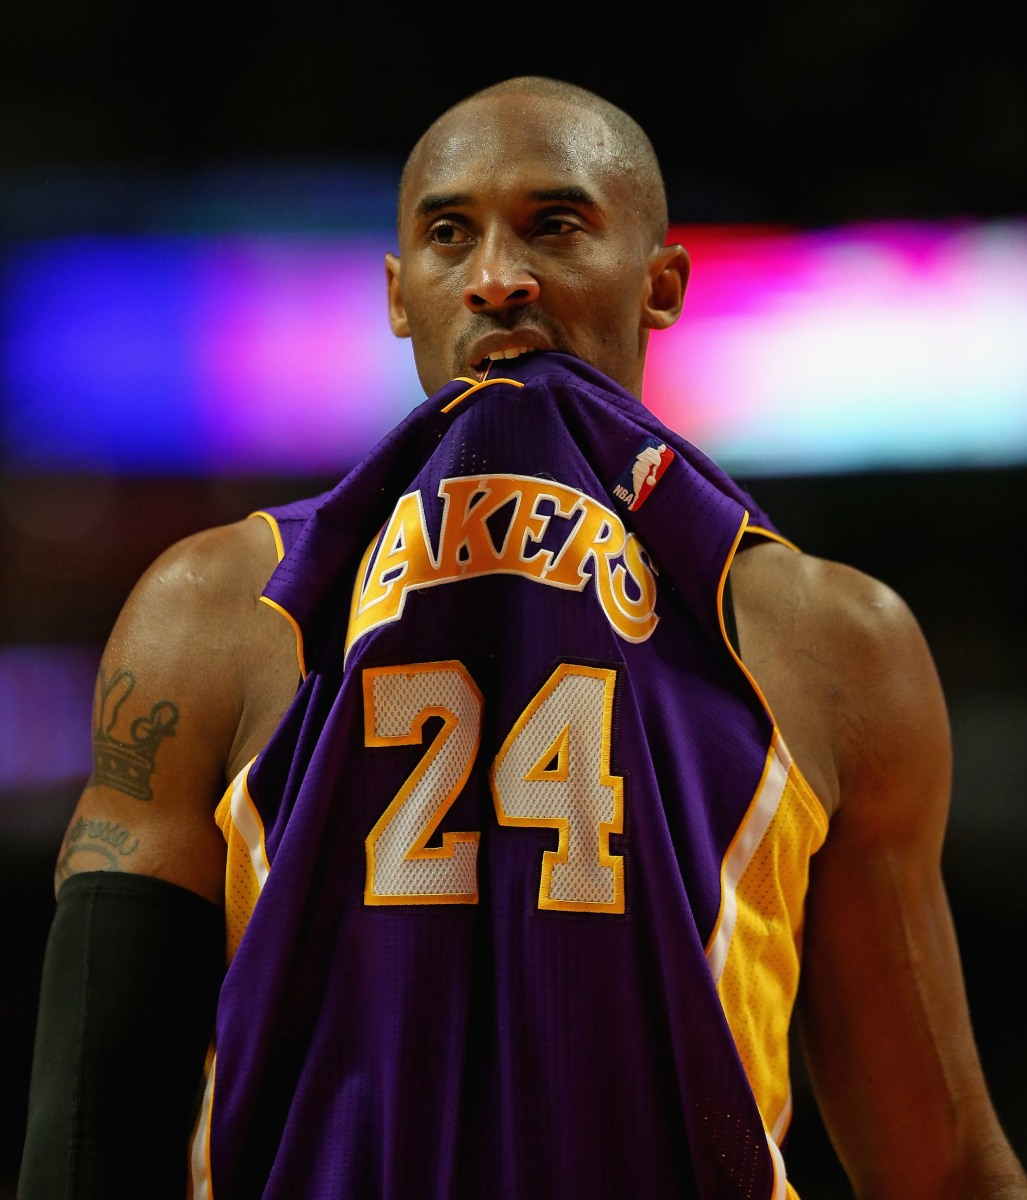 Kobe Bryant's Game Day Preparation